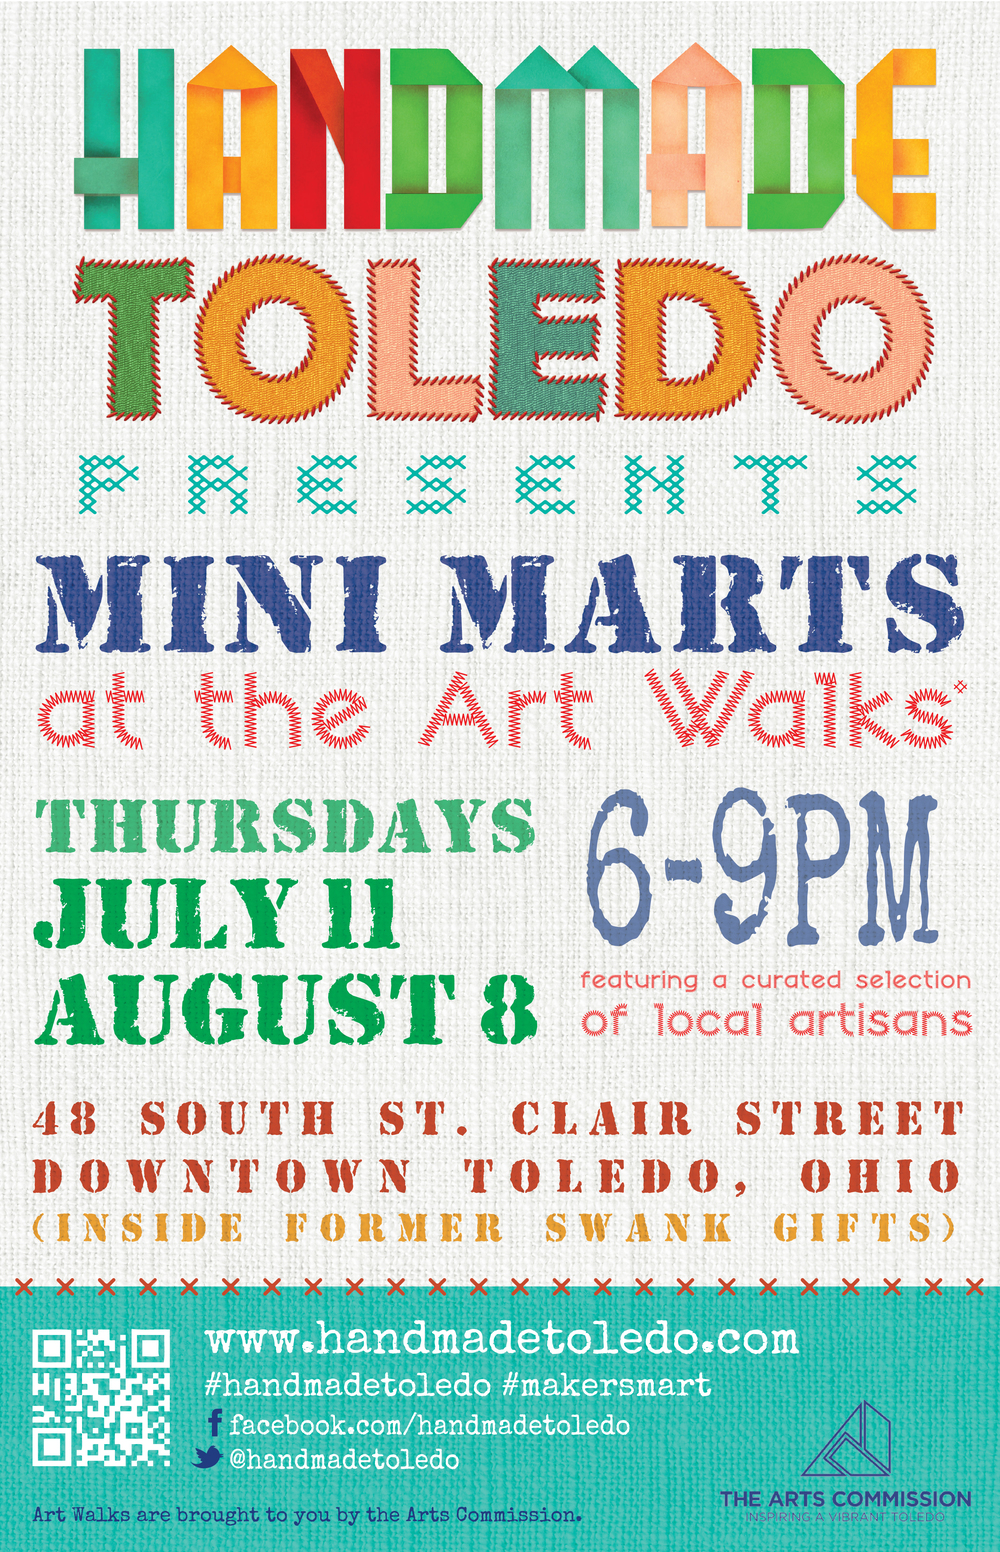 Poster for Handmade Toledo Mini Marts at the Art Walks in downtown Toledo this summer